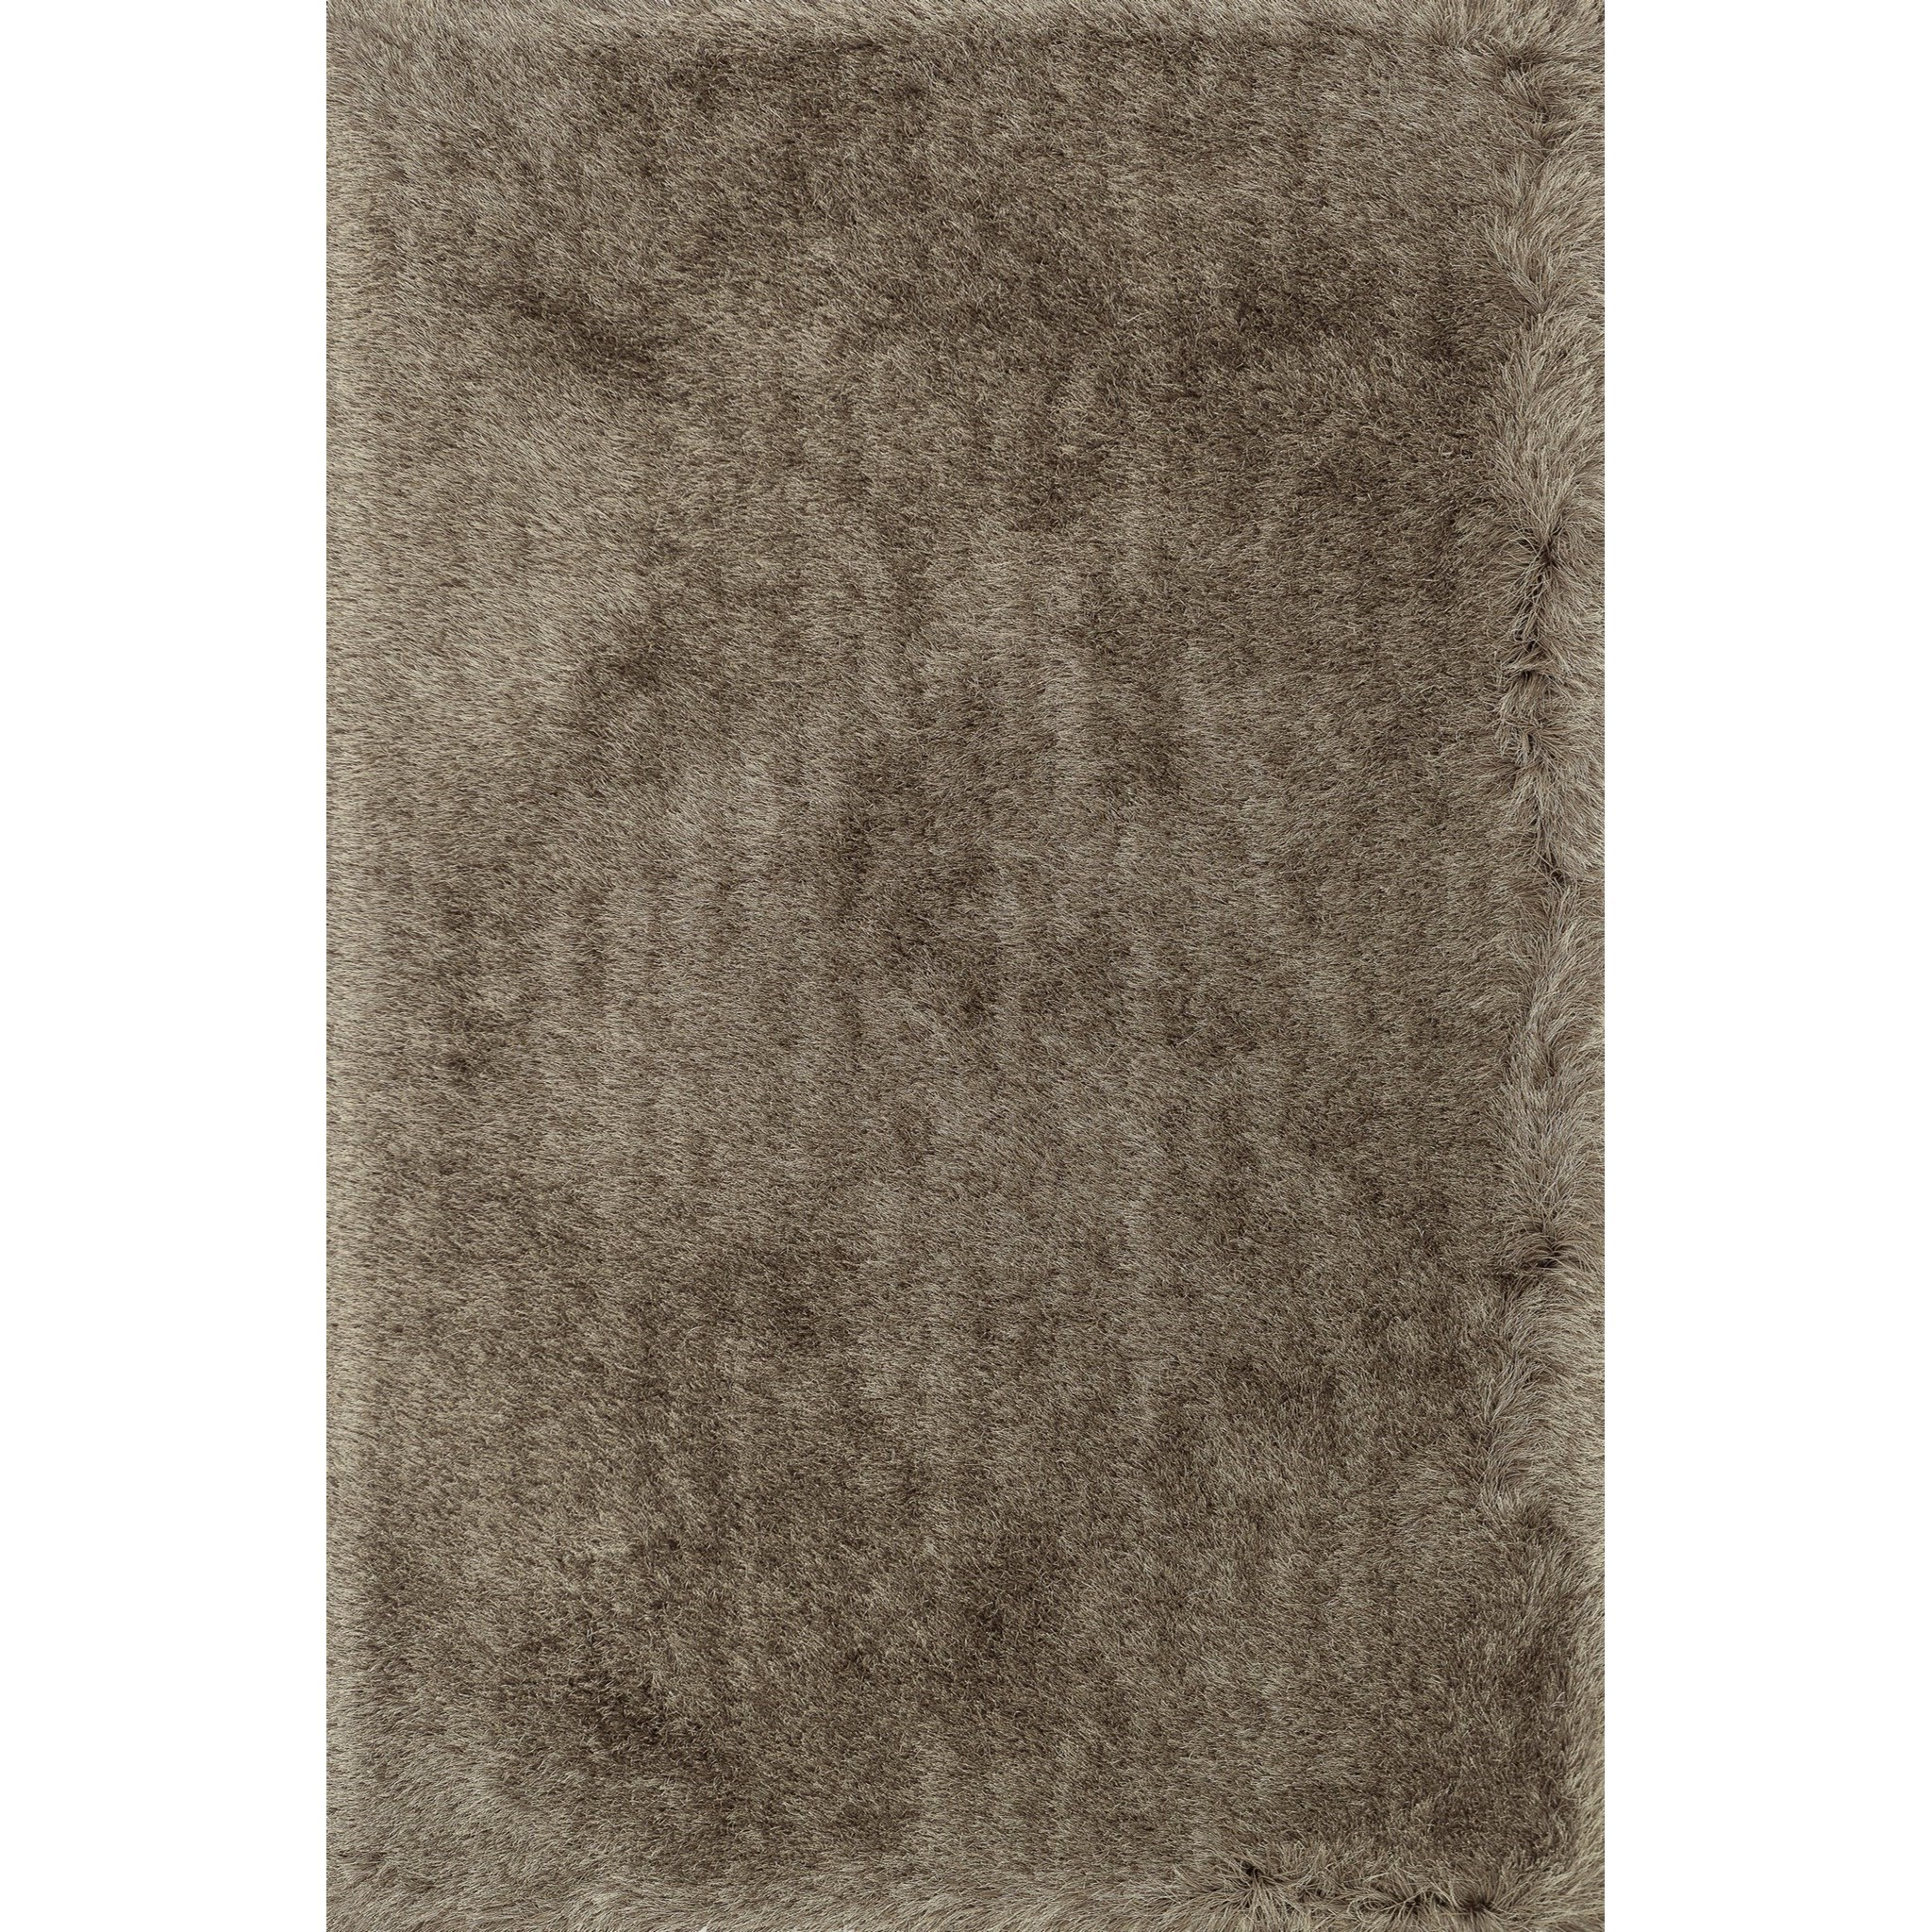 "Allure Shag 3'-6"" x 5'-6"" Area Rug by Loloi Rugs at Sprintz Furniture"